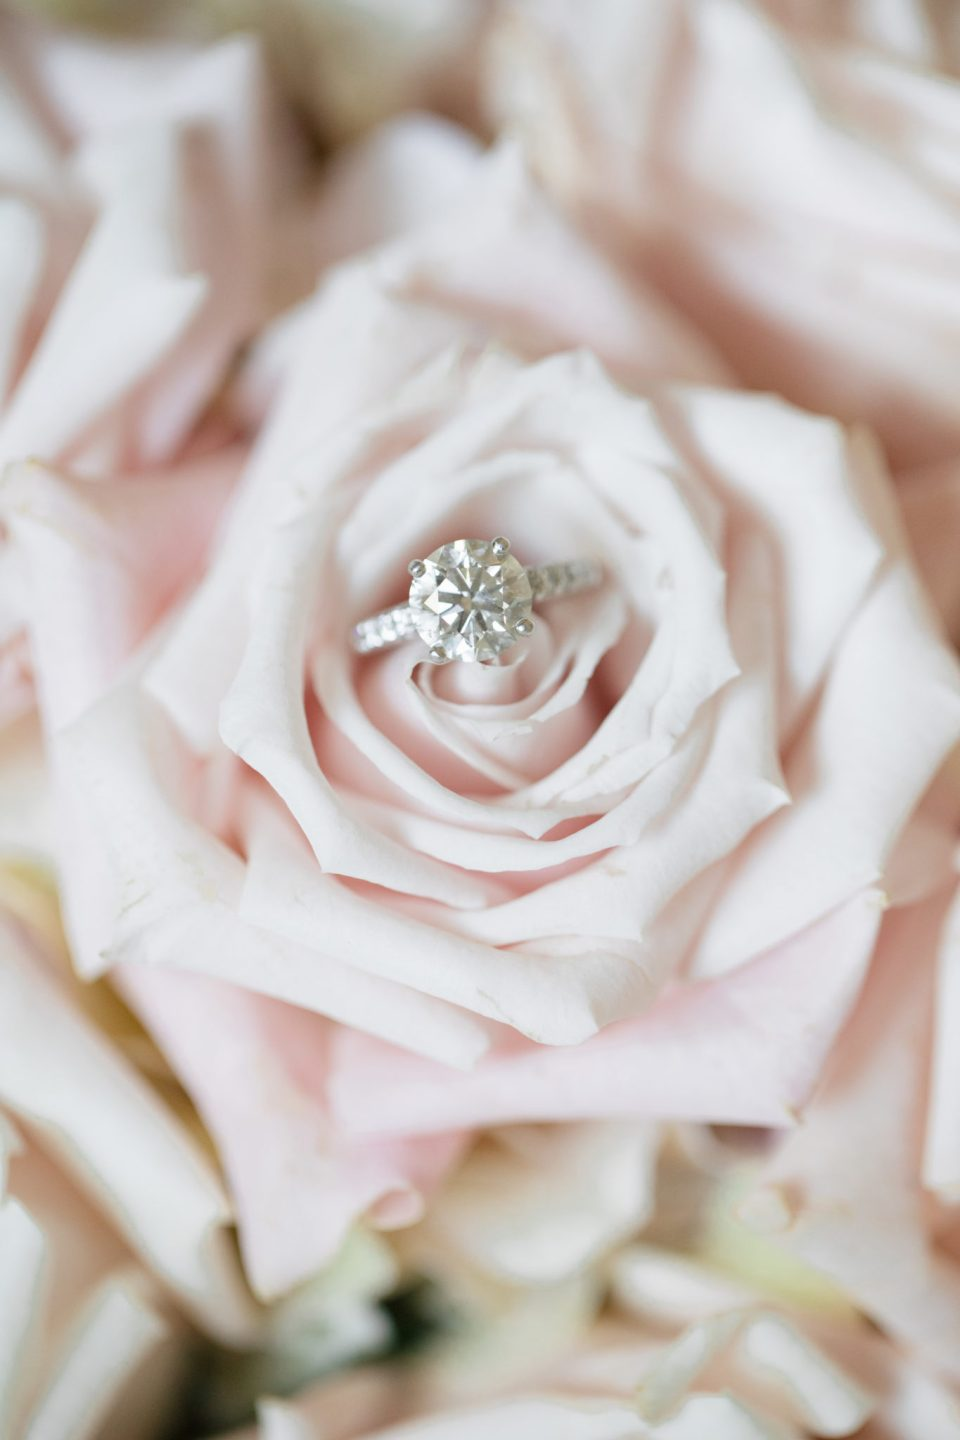 Ashley Mac Photographs captures wedding ring in flower